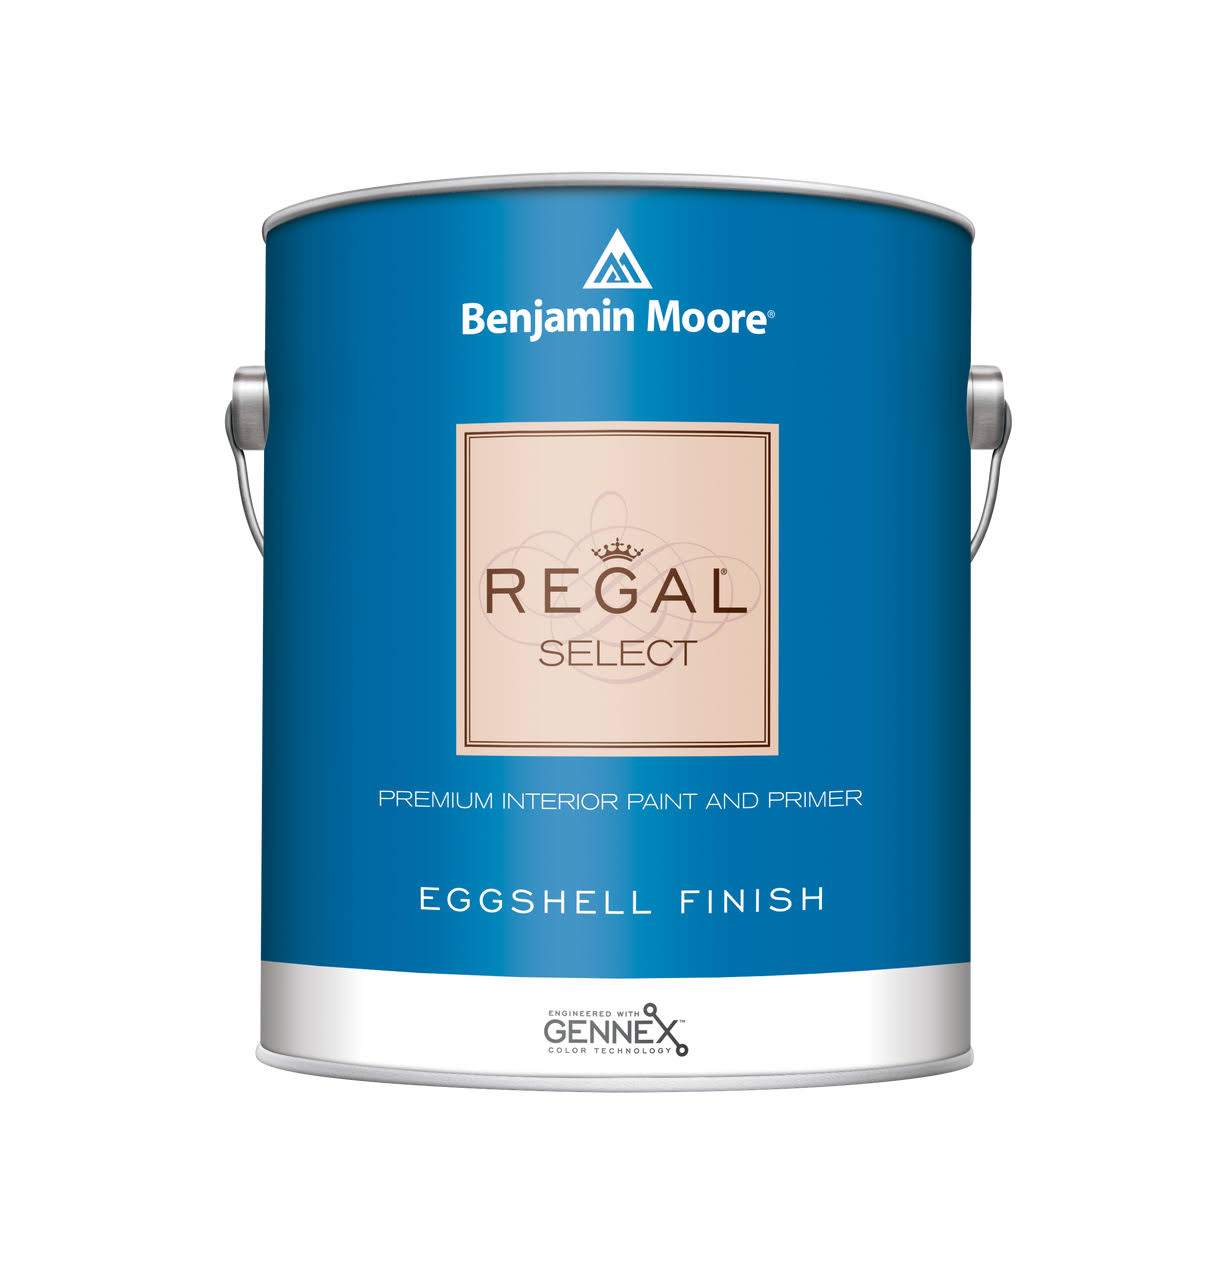 Benjamin Moore Regal Select Interior Eggshell Paint